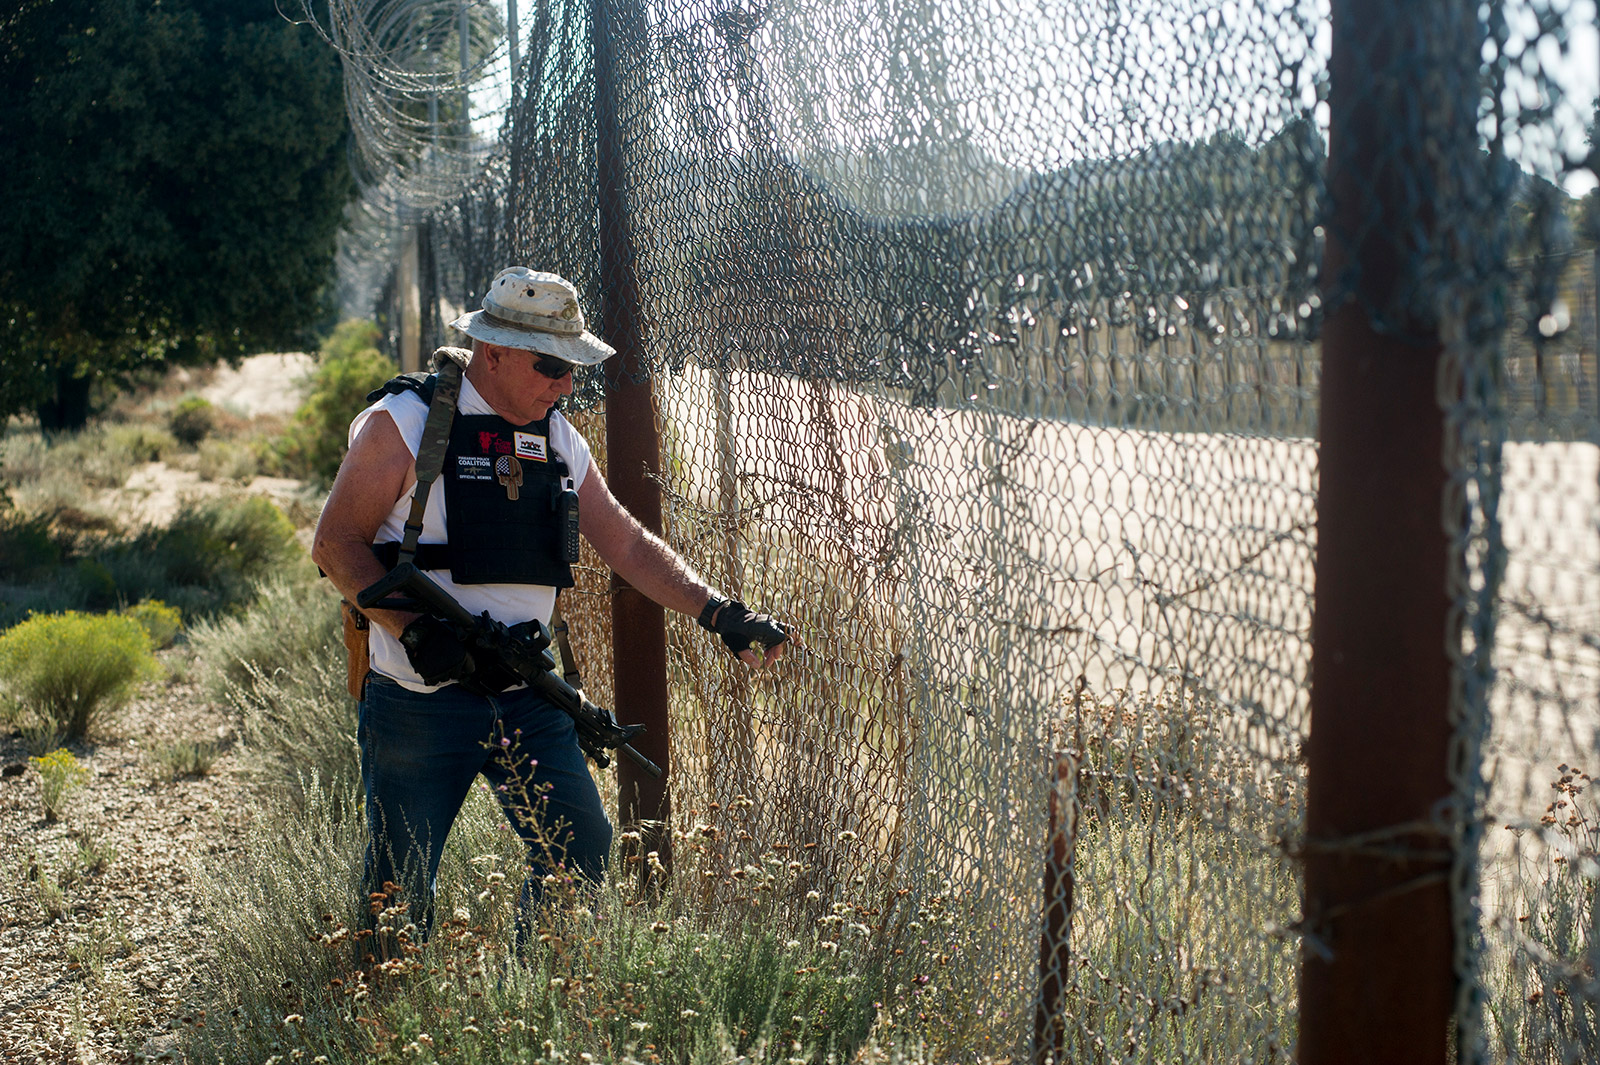 Bob Maupin, 78, checks an area of fencing along the U.S.-Mexico border at his ranch outside Boulevard in eastern San Diego County. Maupin said drug and human smugglers often cut through his fence to enter the U.S. illegally. This photo is from Aug. 30, 2017. <em>(Brandon Quester/inewsource)</em>